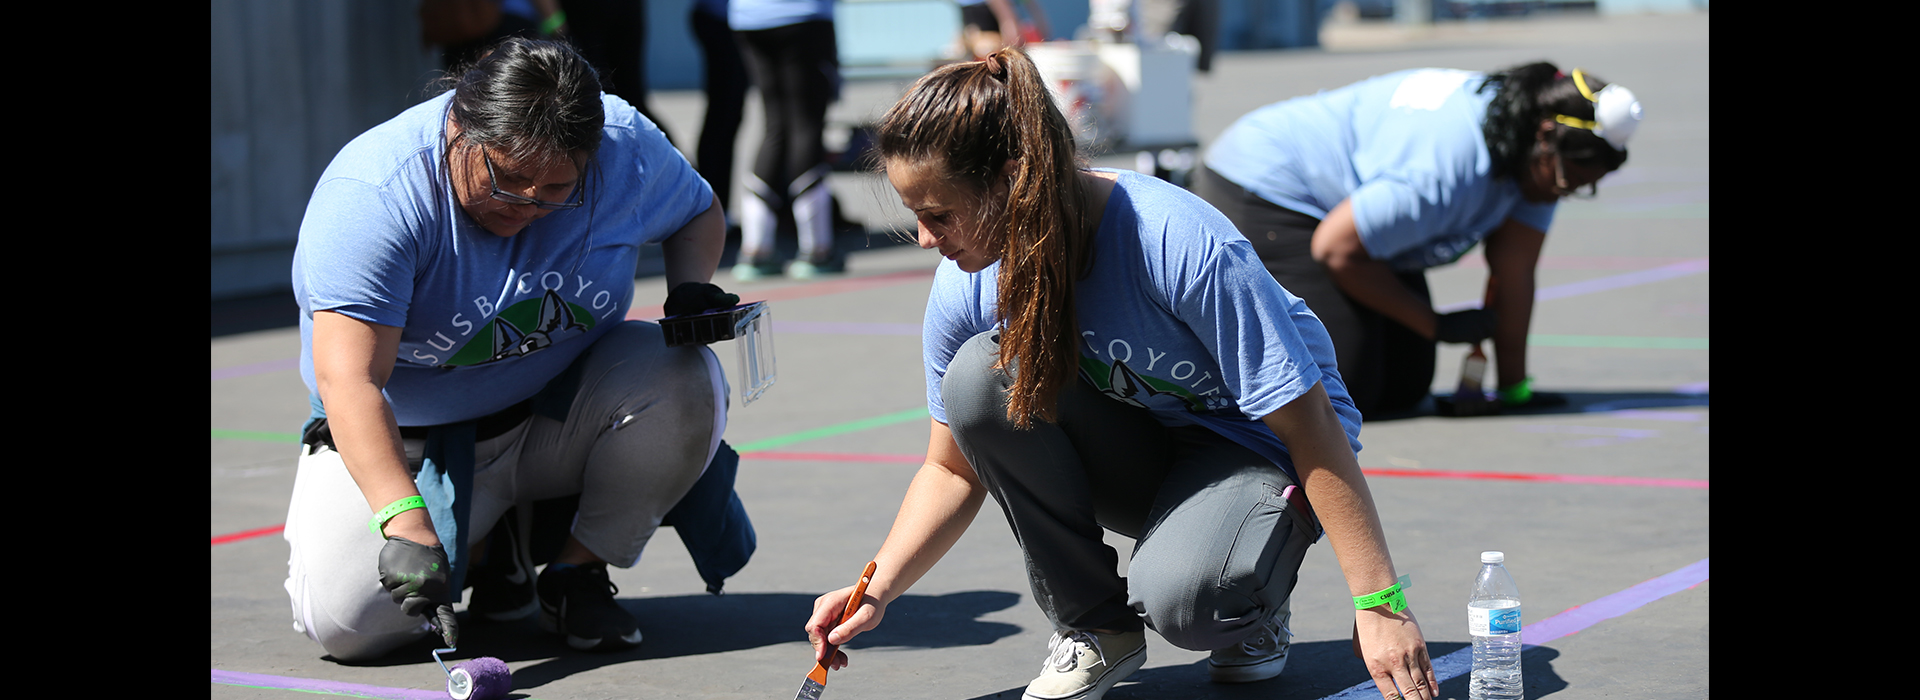 CSUSB volunteers help make 7th annual Coyote Cares Day a success in helping others